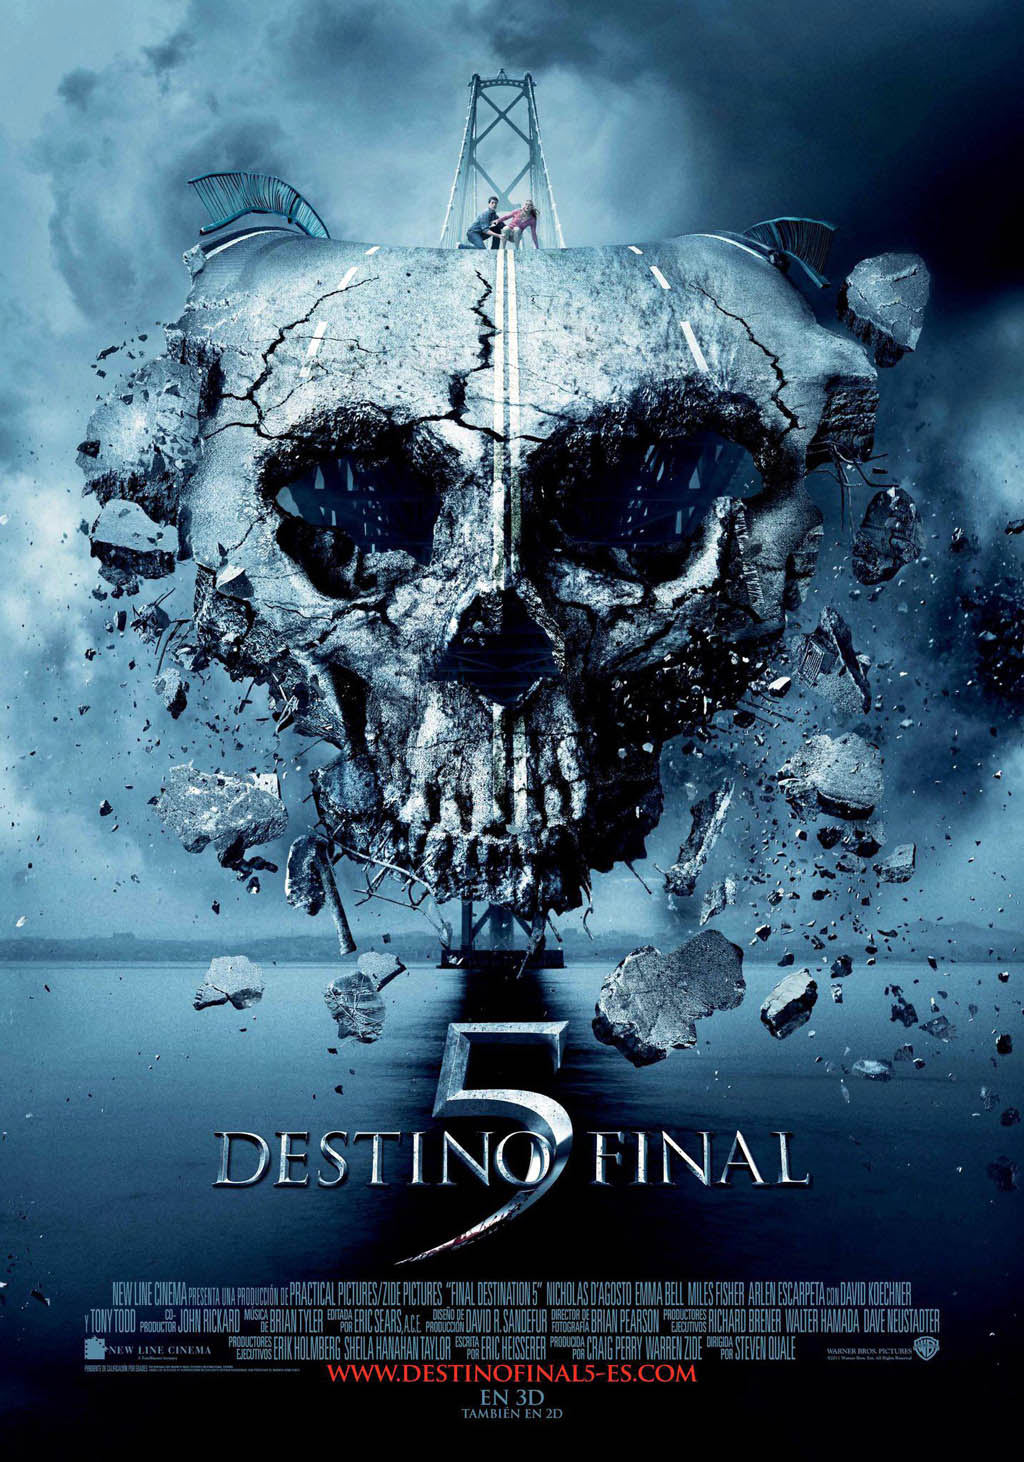 Destino final 5 - (2011) - Review Propio